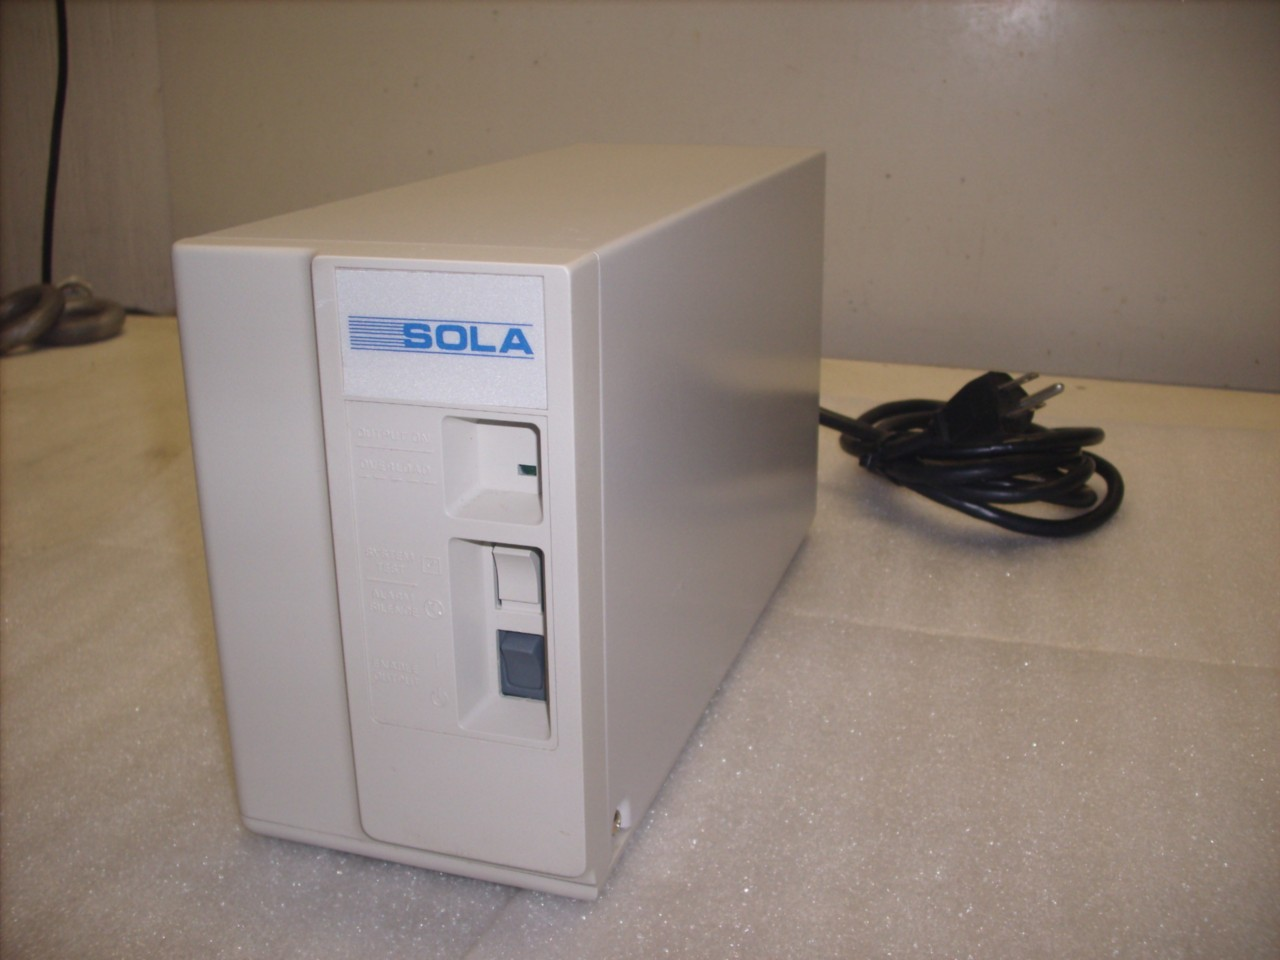 SOLA UPS 400 VA - Uninterruptible Power Supply Cat# 30-400 ***Price  Reduced*** | Daves Industrial Surplus LLC